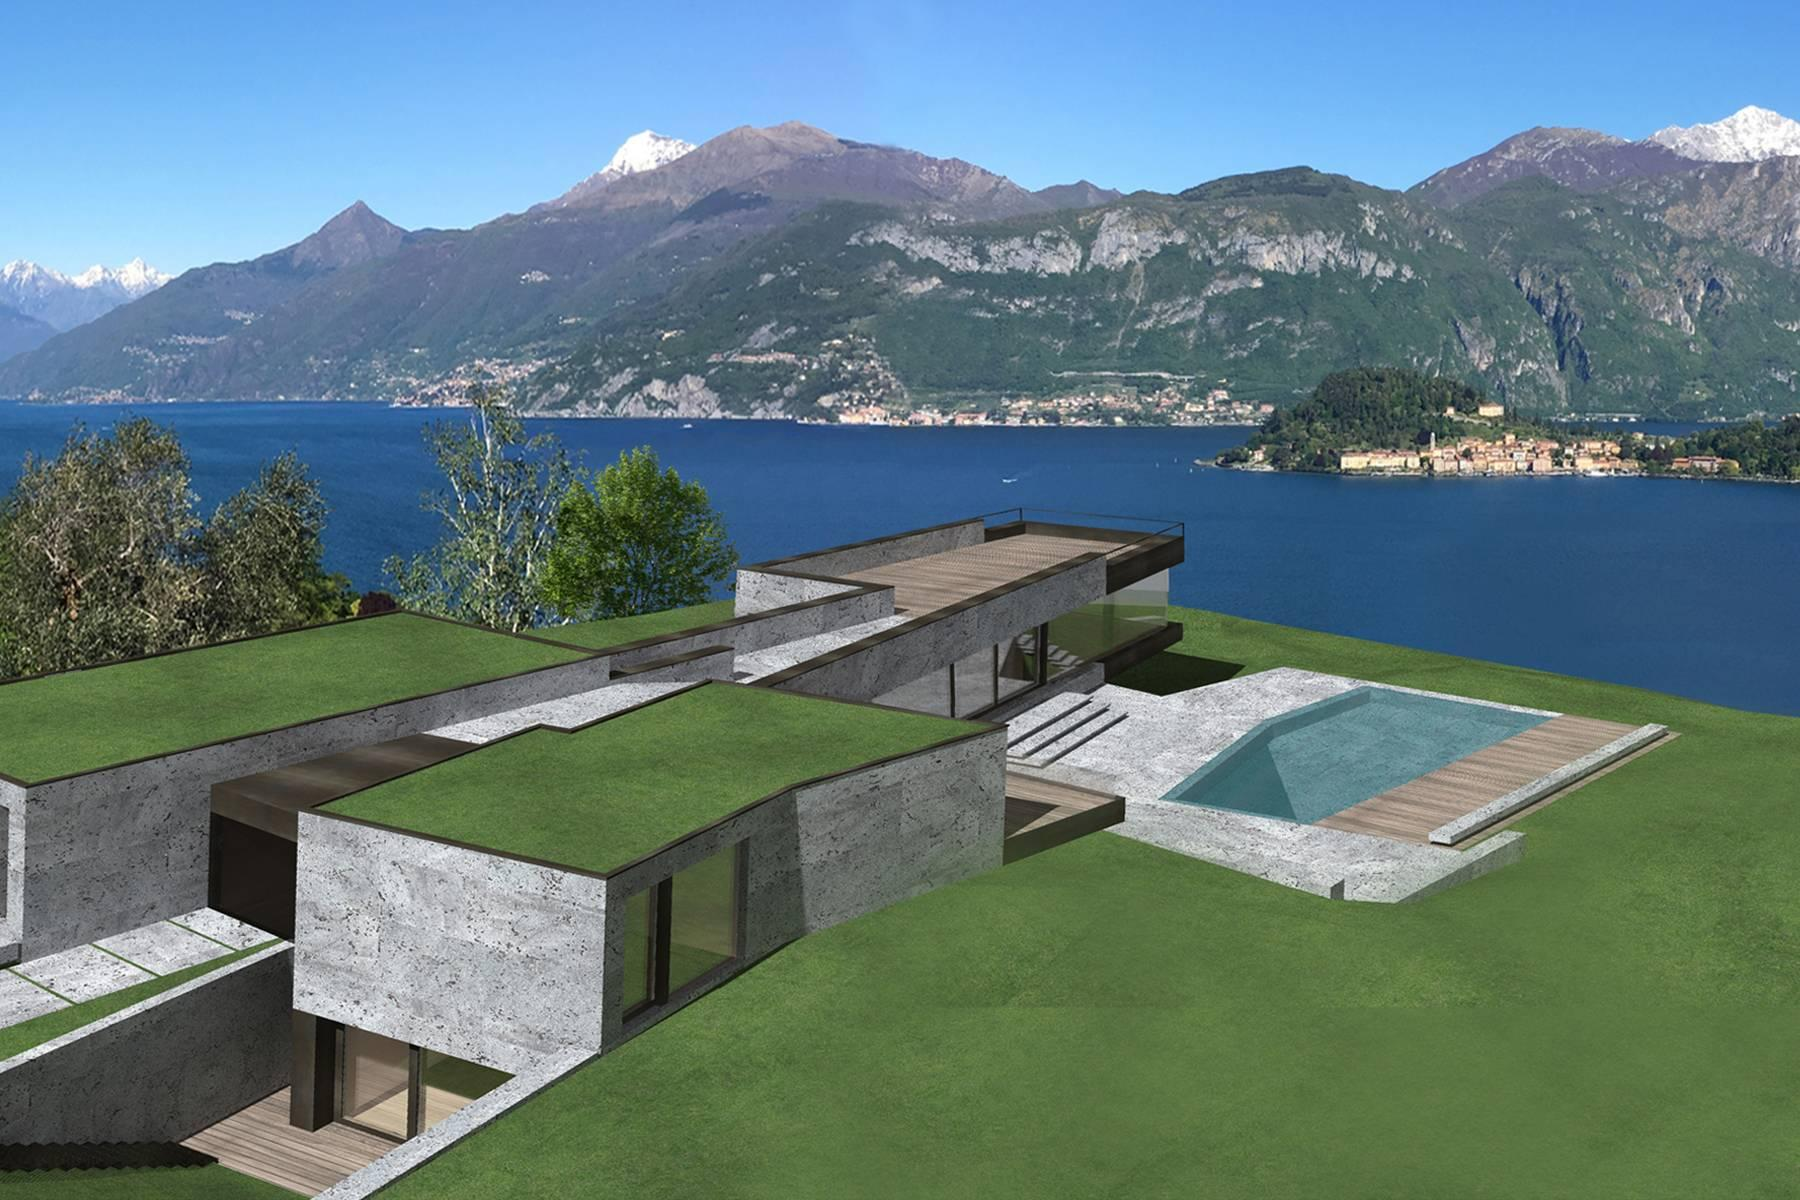 Hollywood style villa overlooking Lake Como from a panoramic location - 1